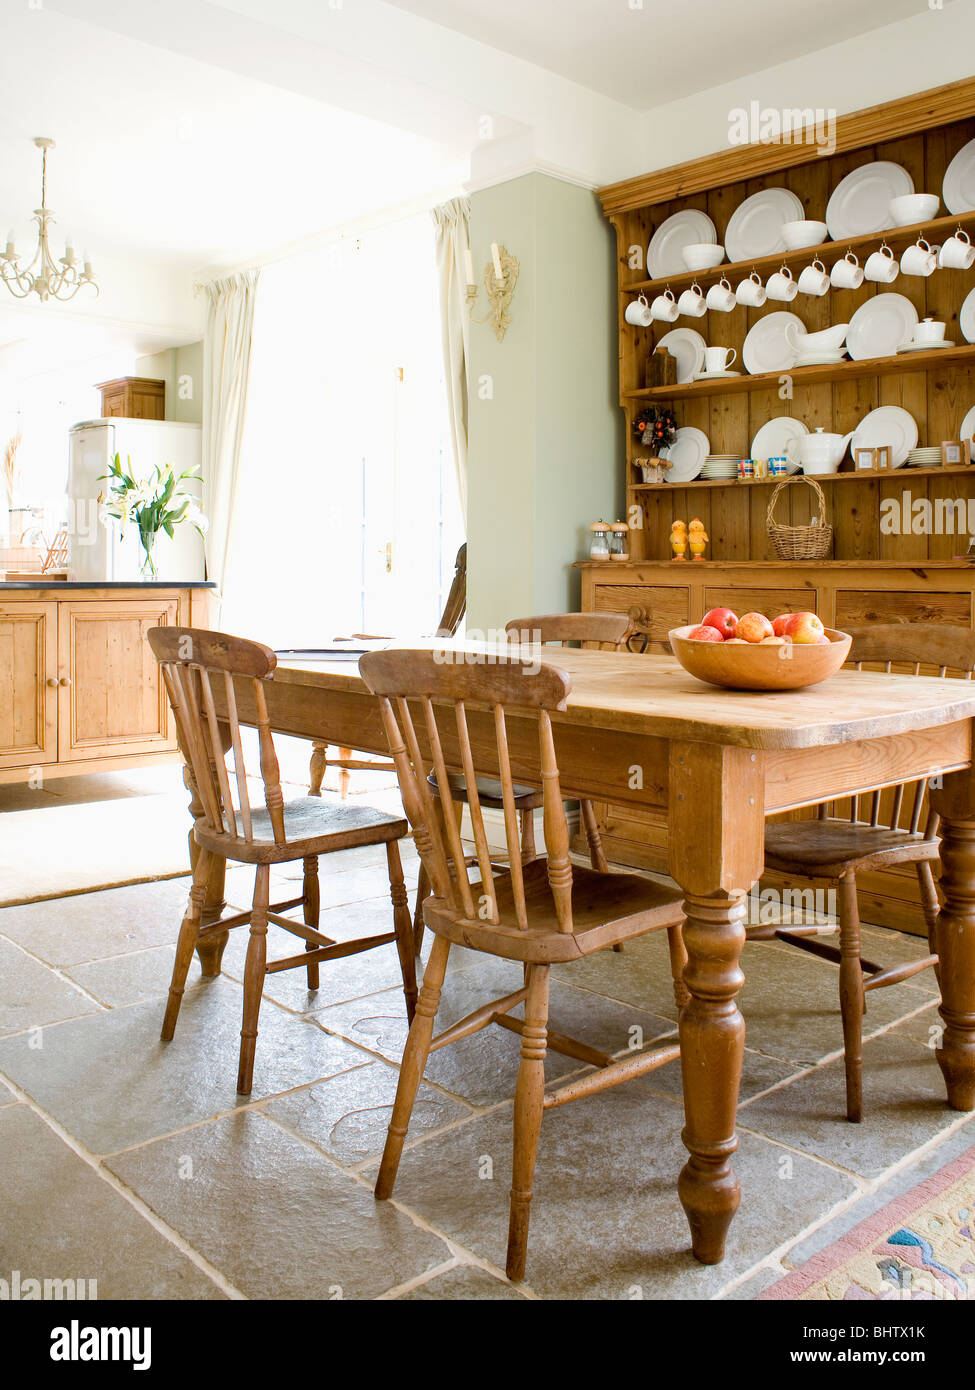 Old Pine Table And Chairs In Country Kitchen With Pine Dresser And  Flagstone Floor